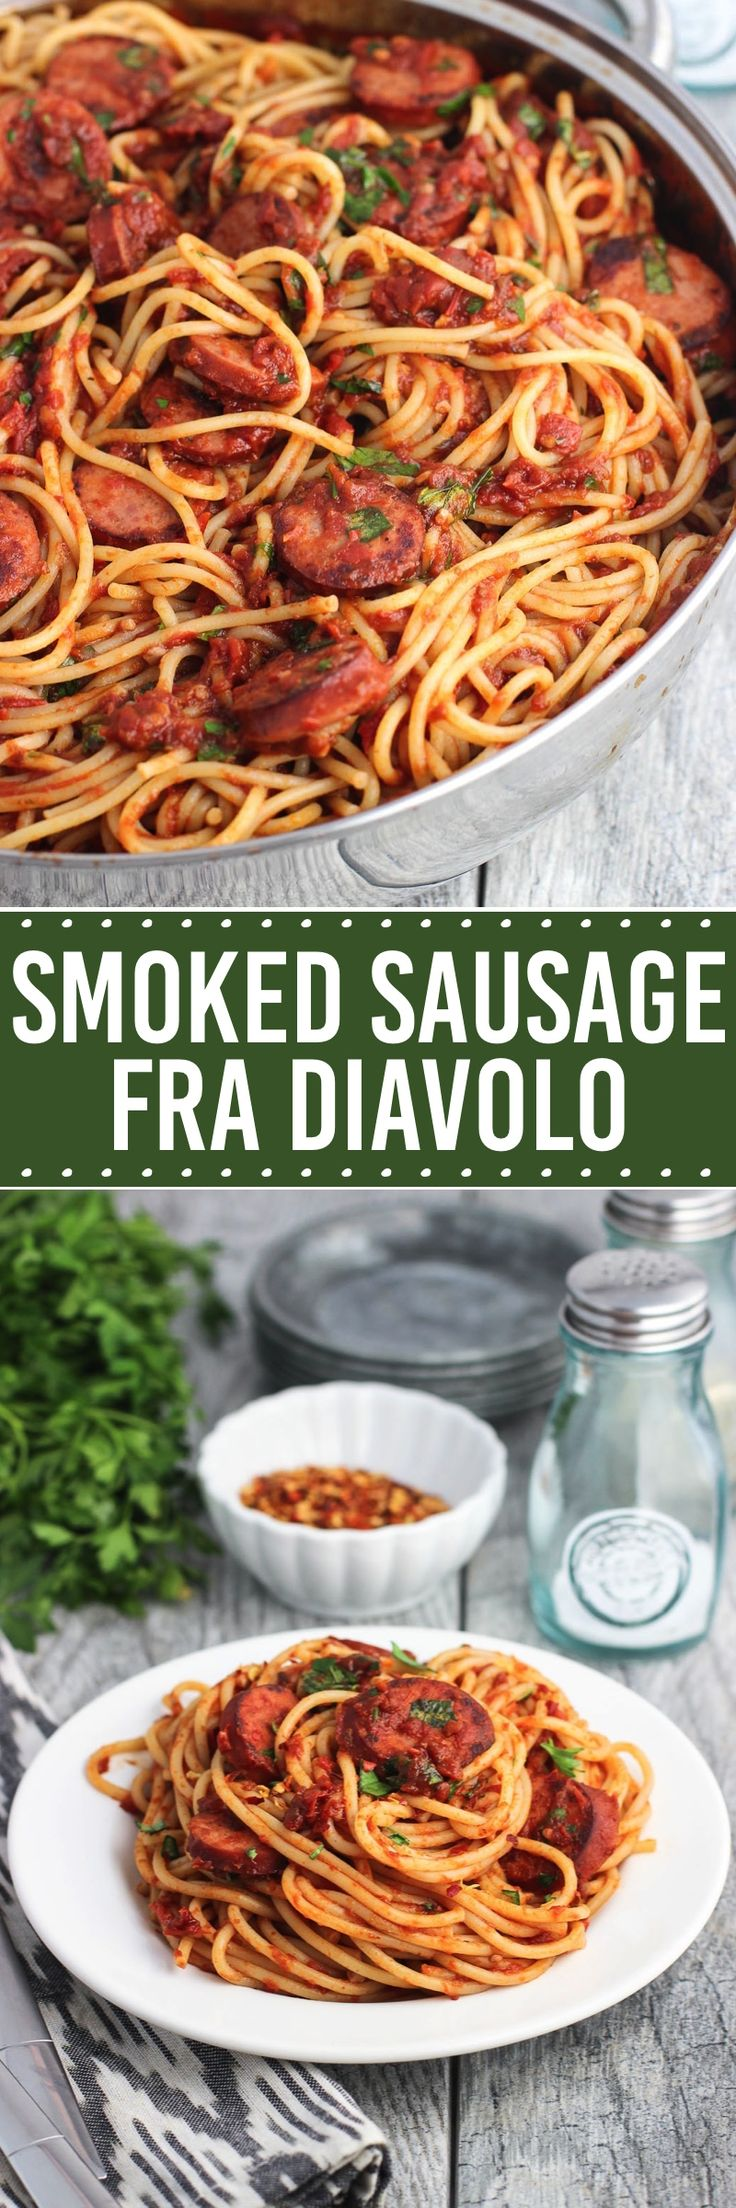 Smoked sausage fra diavolo is a pasta dish with a homemade tomato sauce with a kick! This spicy favorite is served with spaghetti, smoked sausage, and fresh herbs for a new twist on a classic pasta.